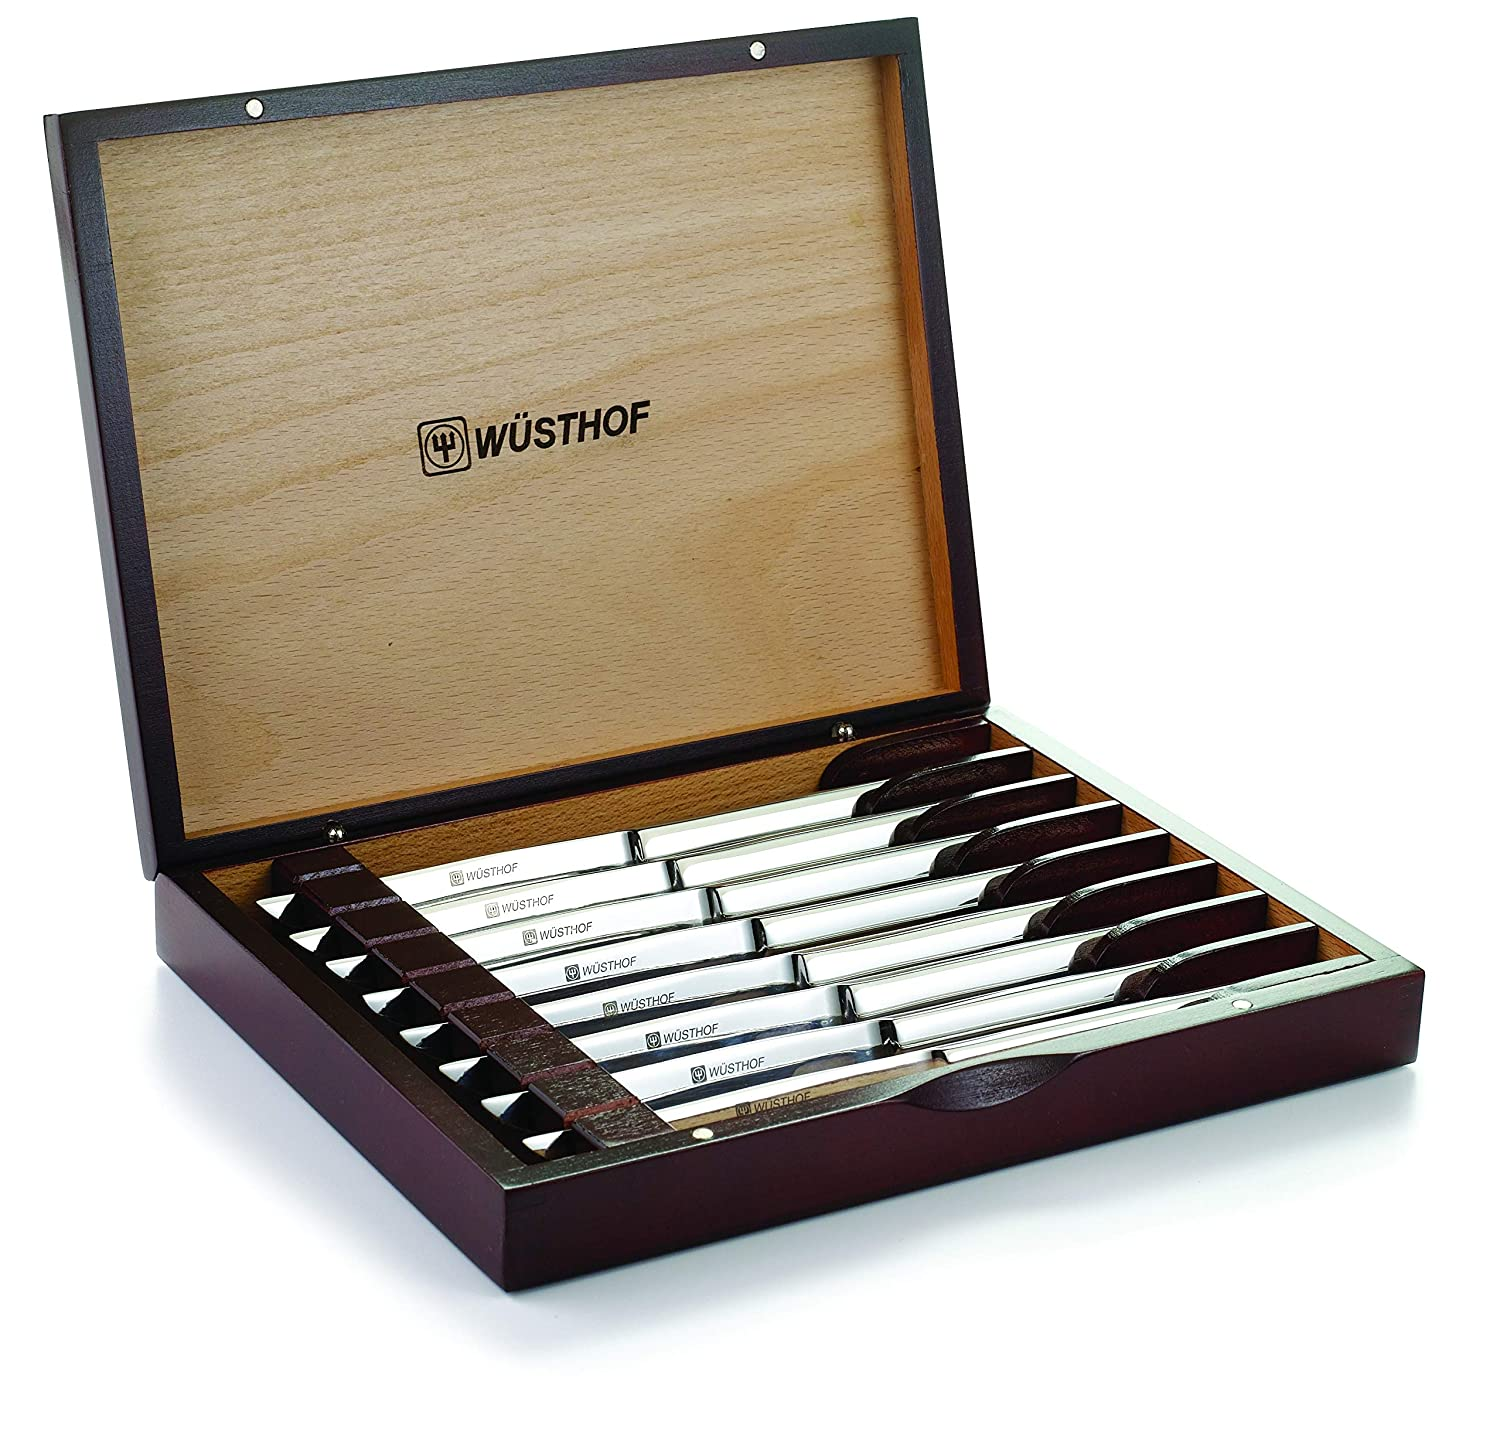 Wusthof Stainless-Steel Best Gift Steak Knife Set with Wooden Box